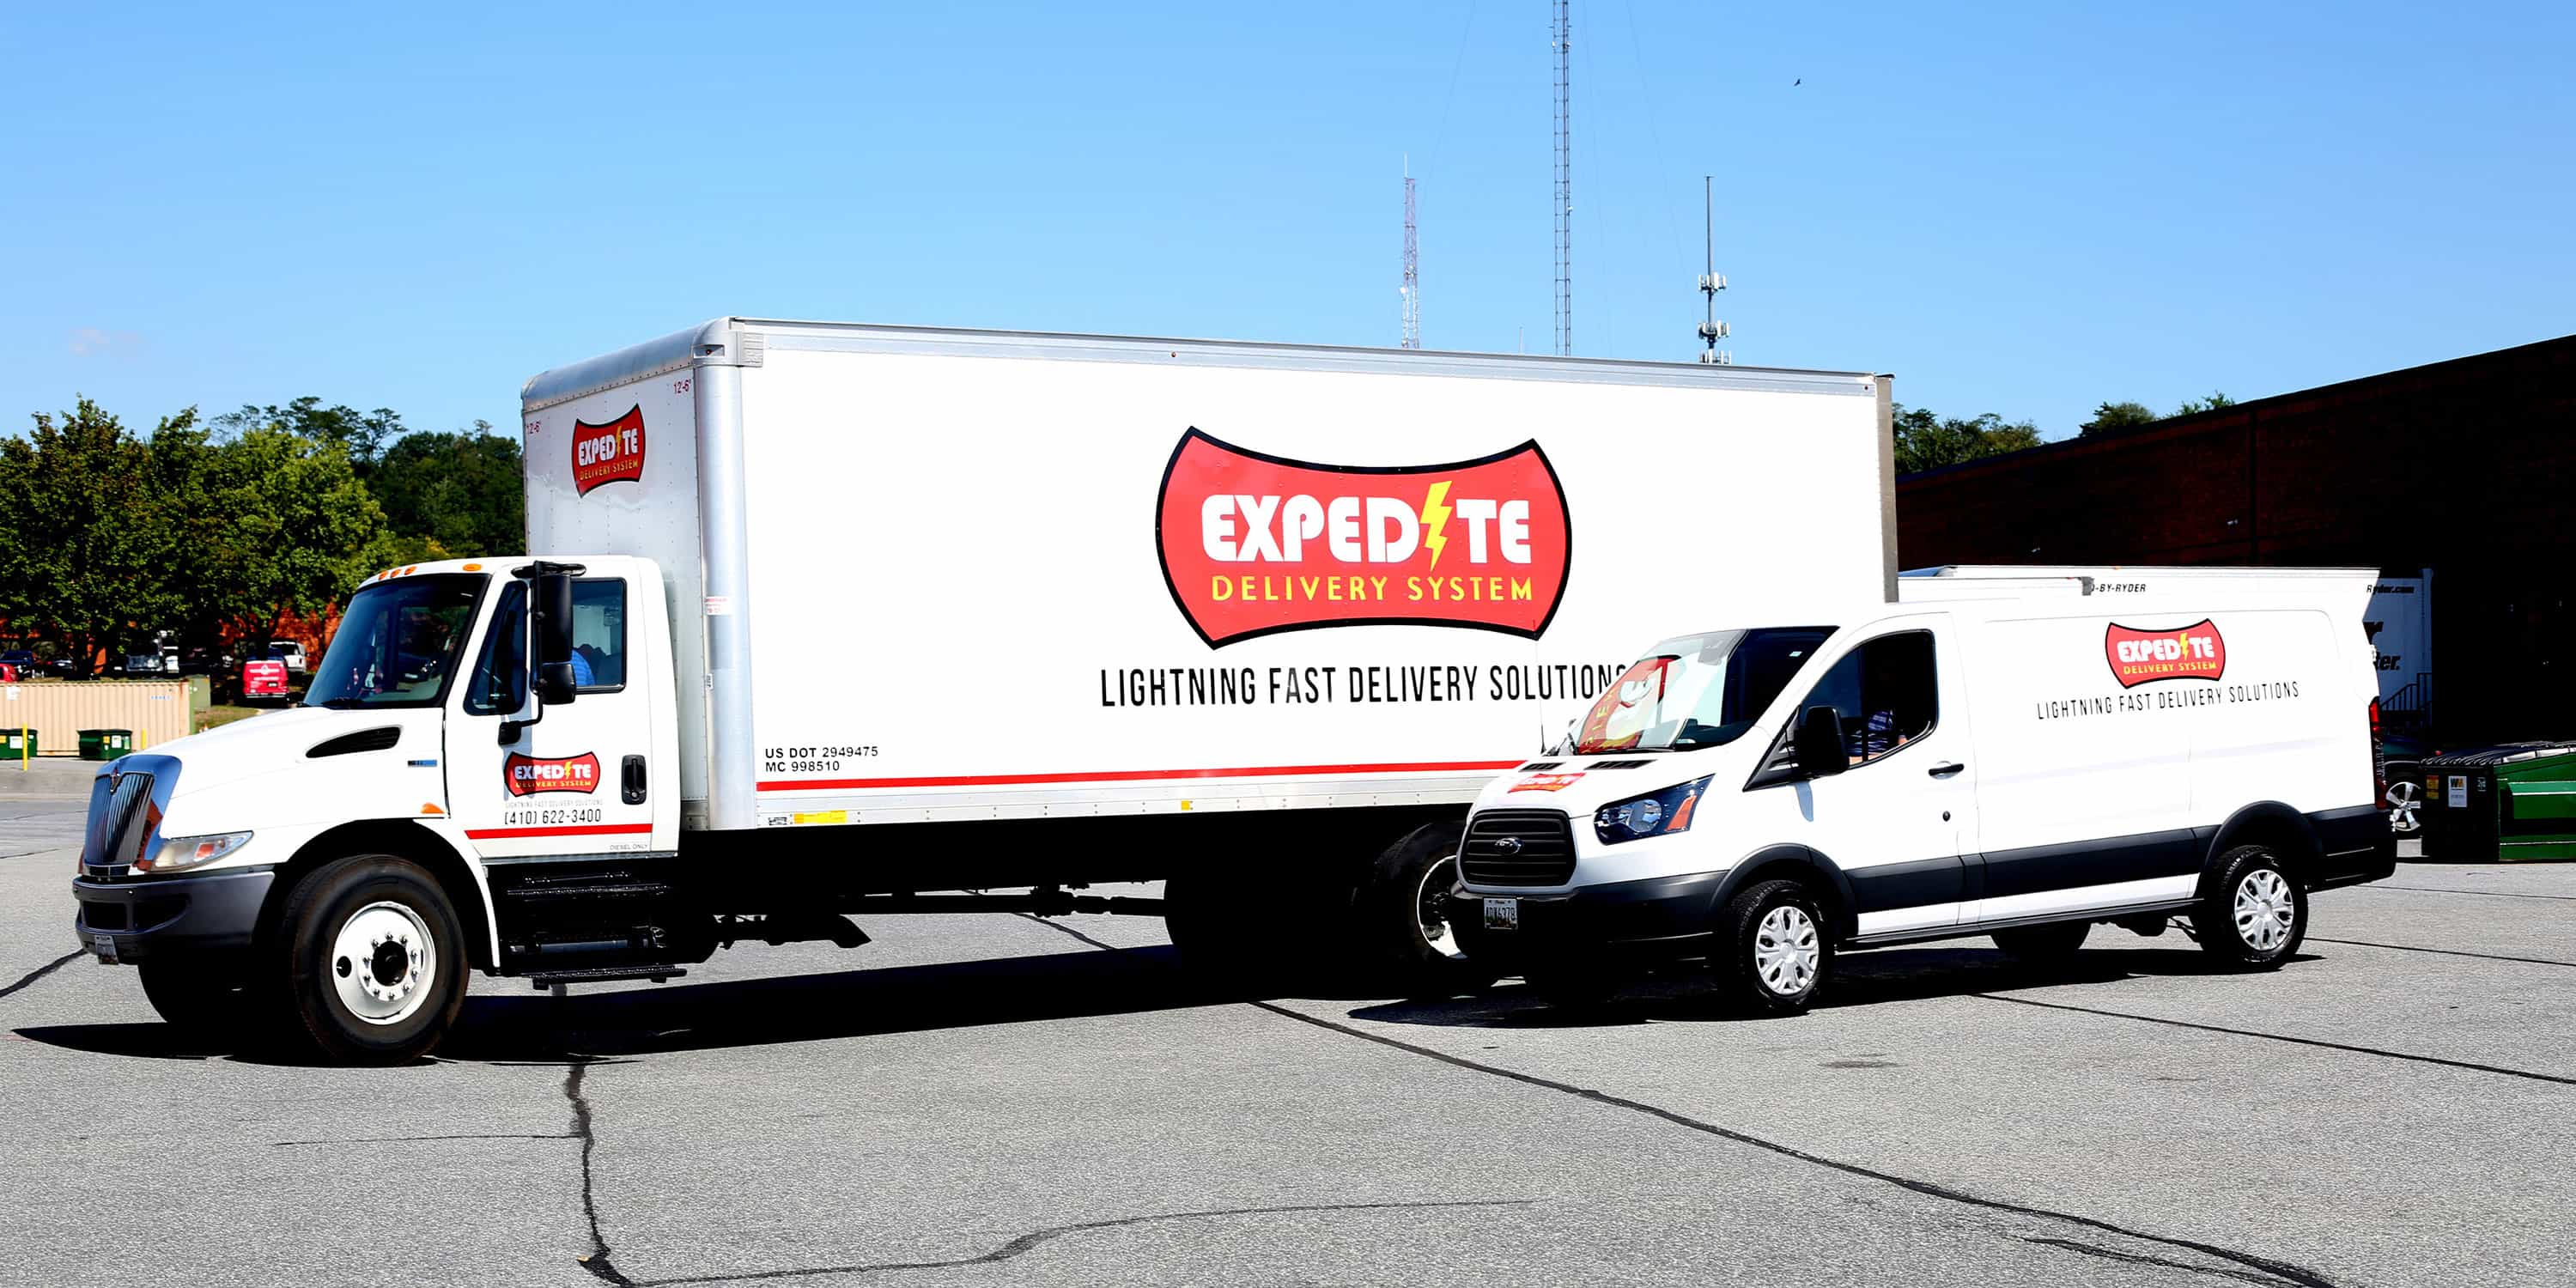 Expedite Delivery System Freight Truck and Van